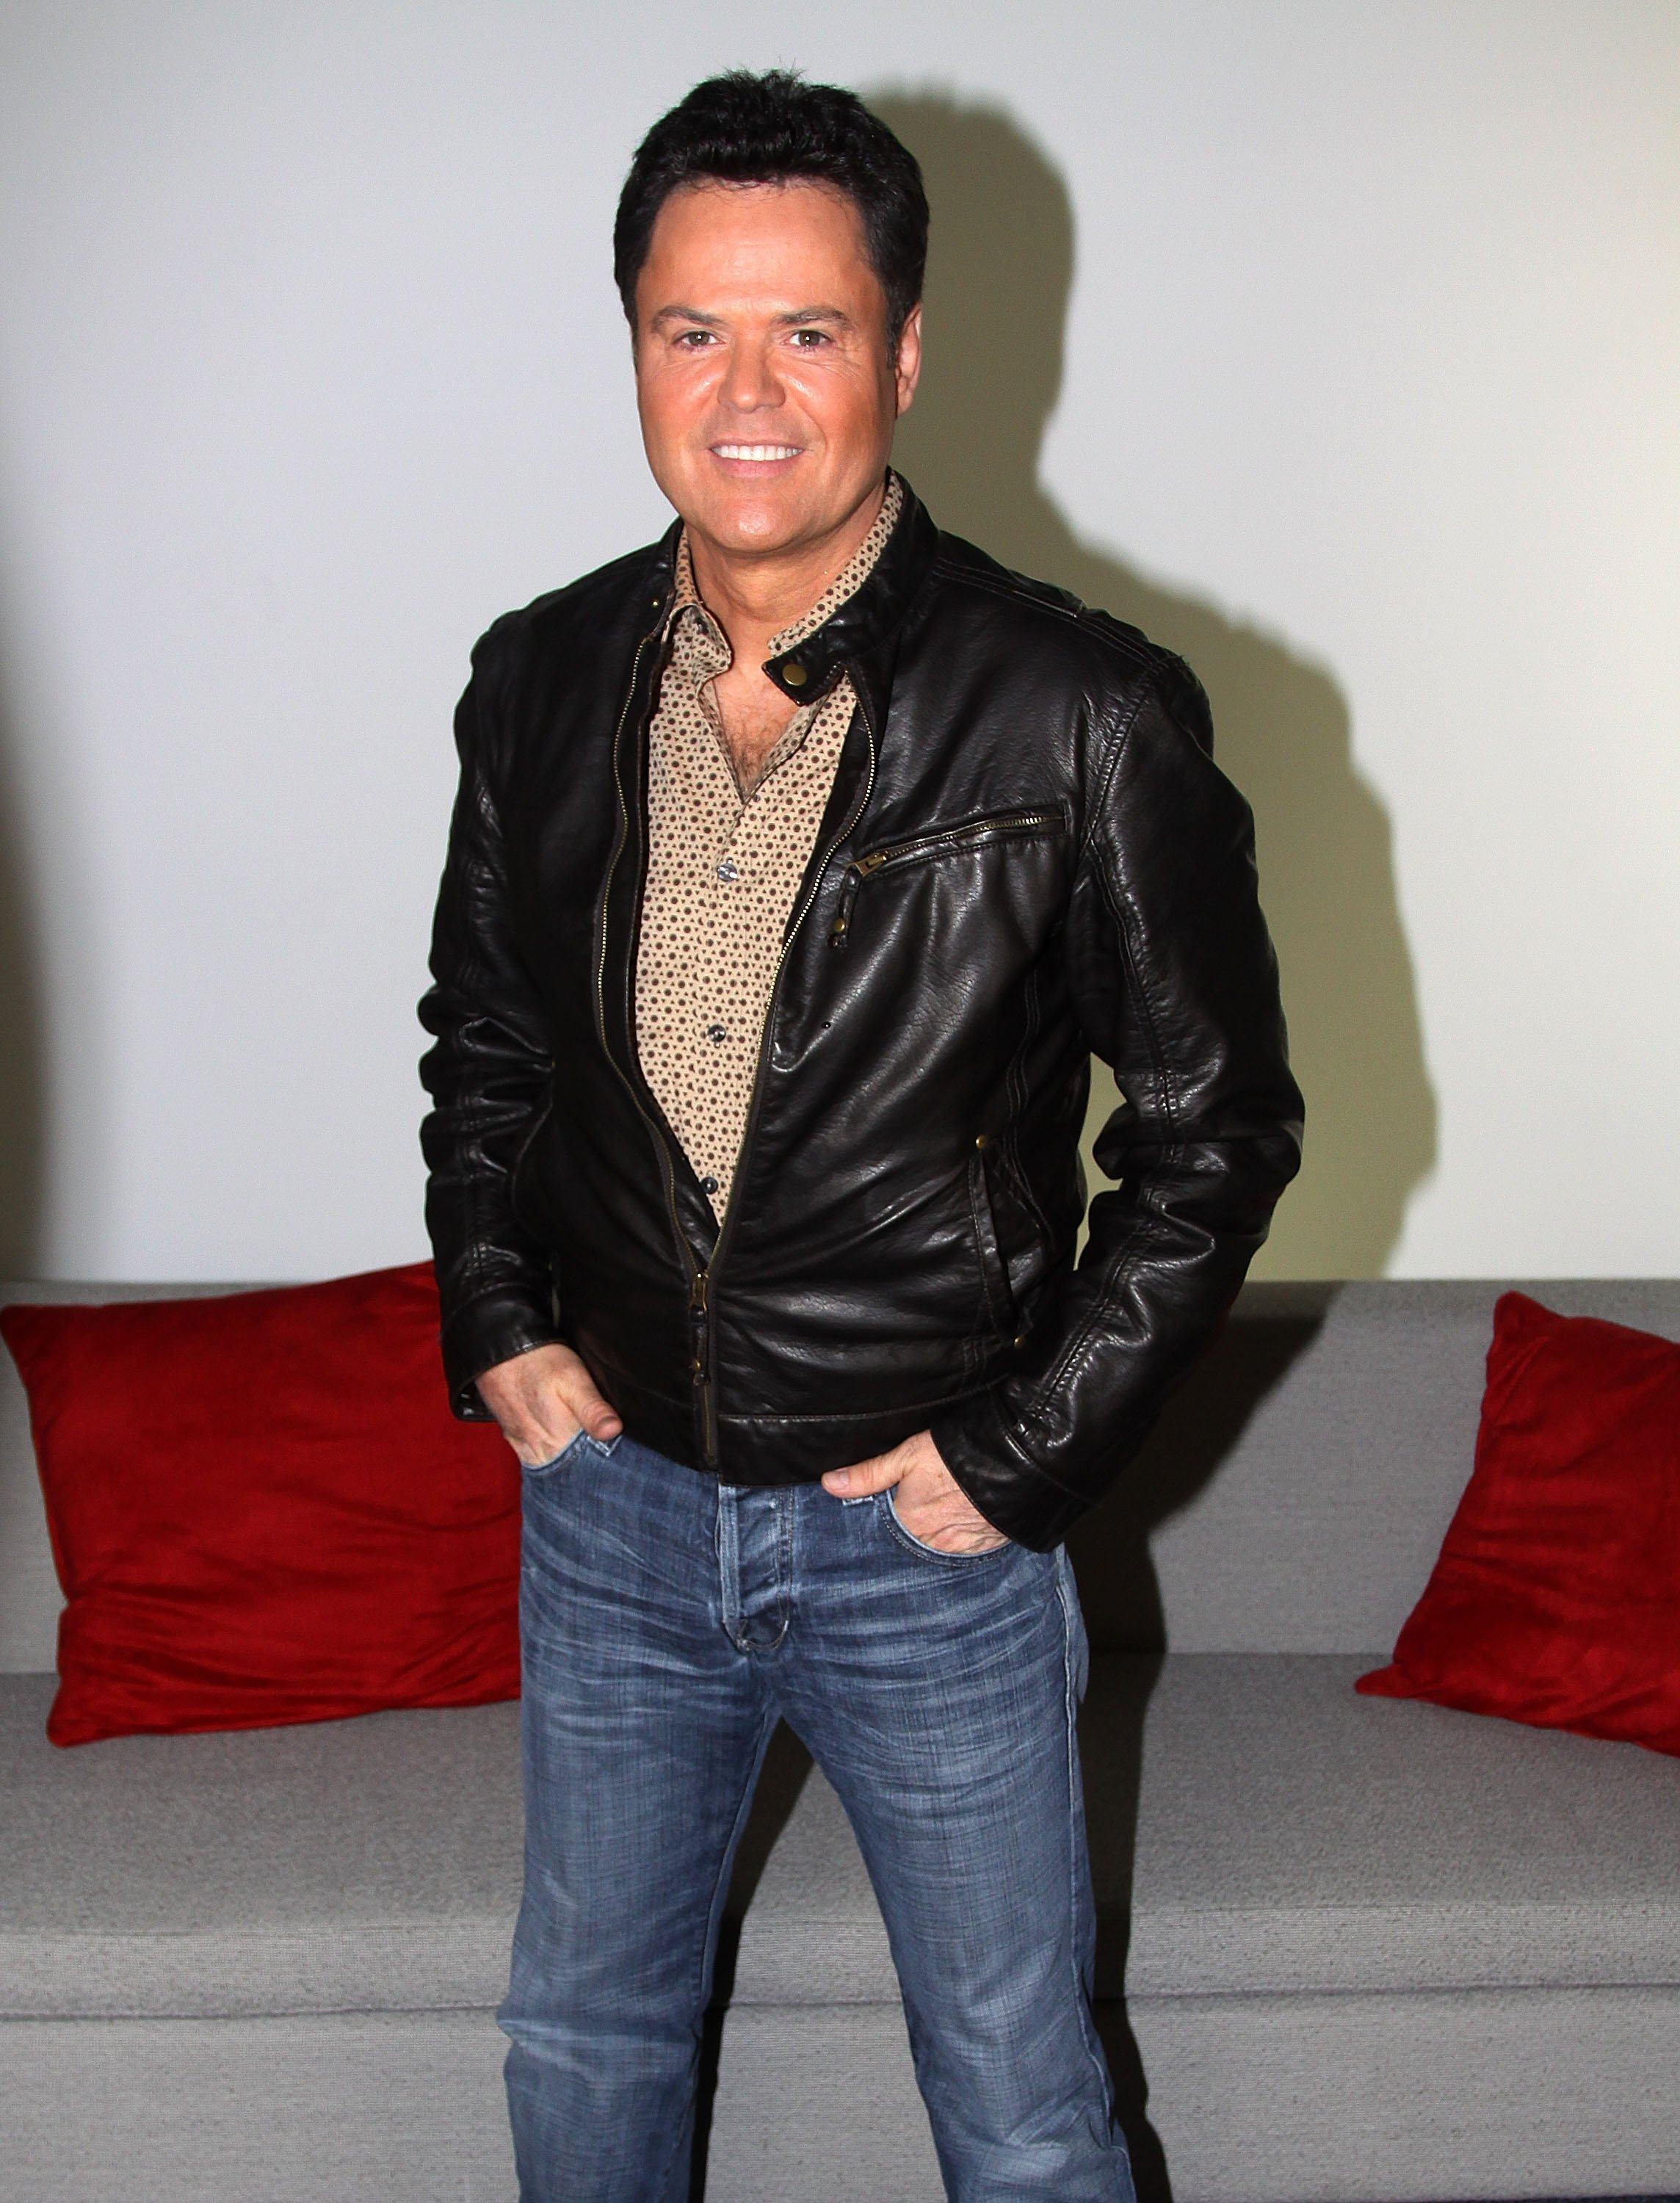 Donny Osmond on December 8, 2010 in New York City   Source: Getty Images